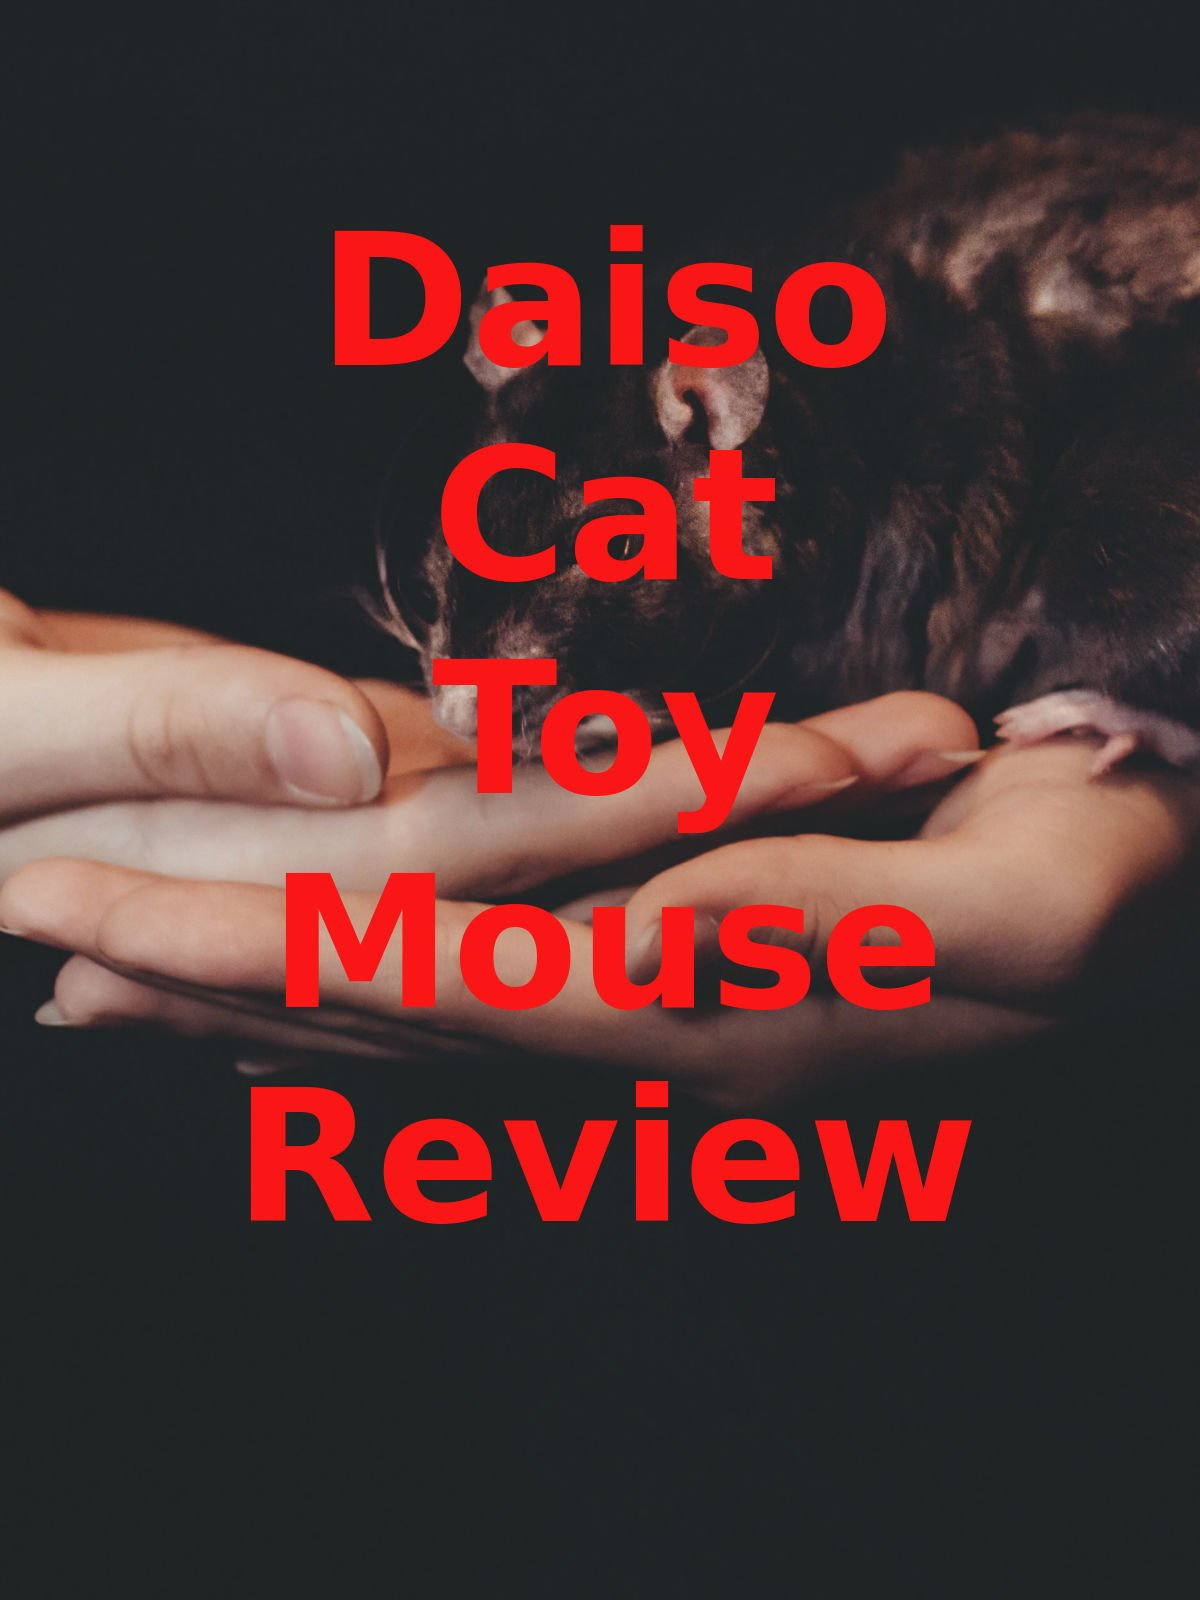 Review: Daiso Cat Toy Mouse Review